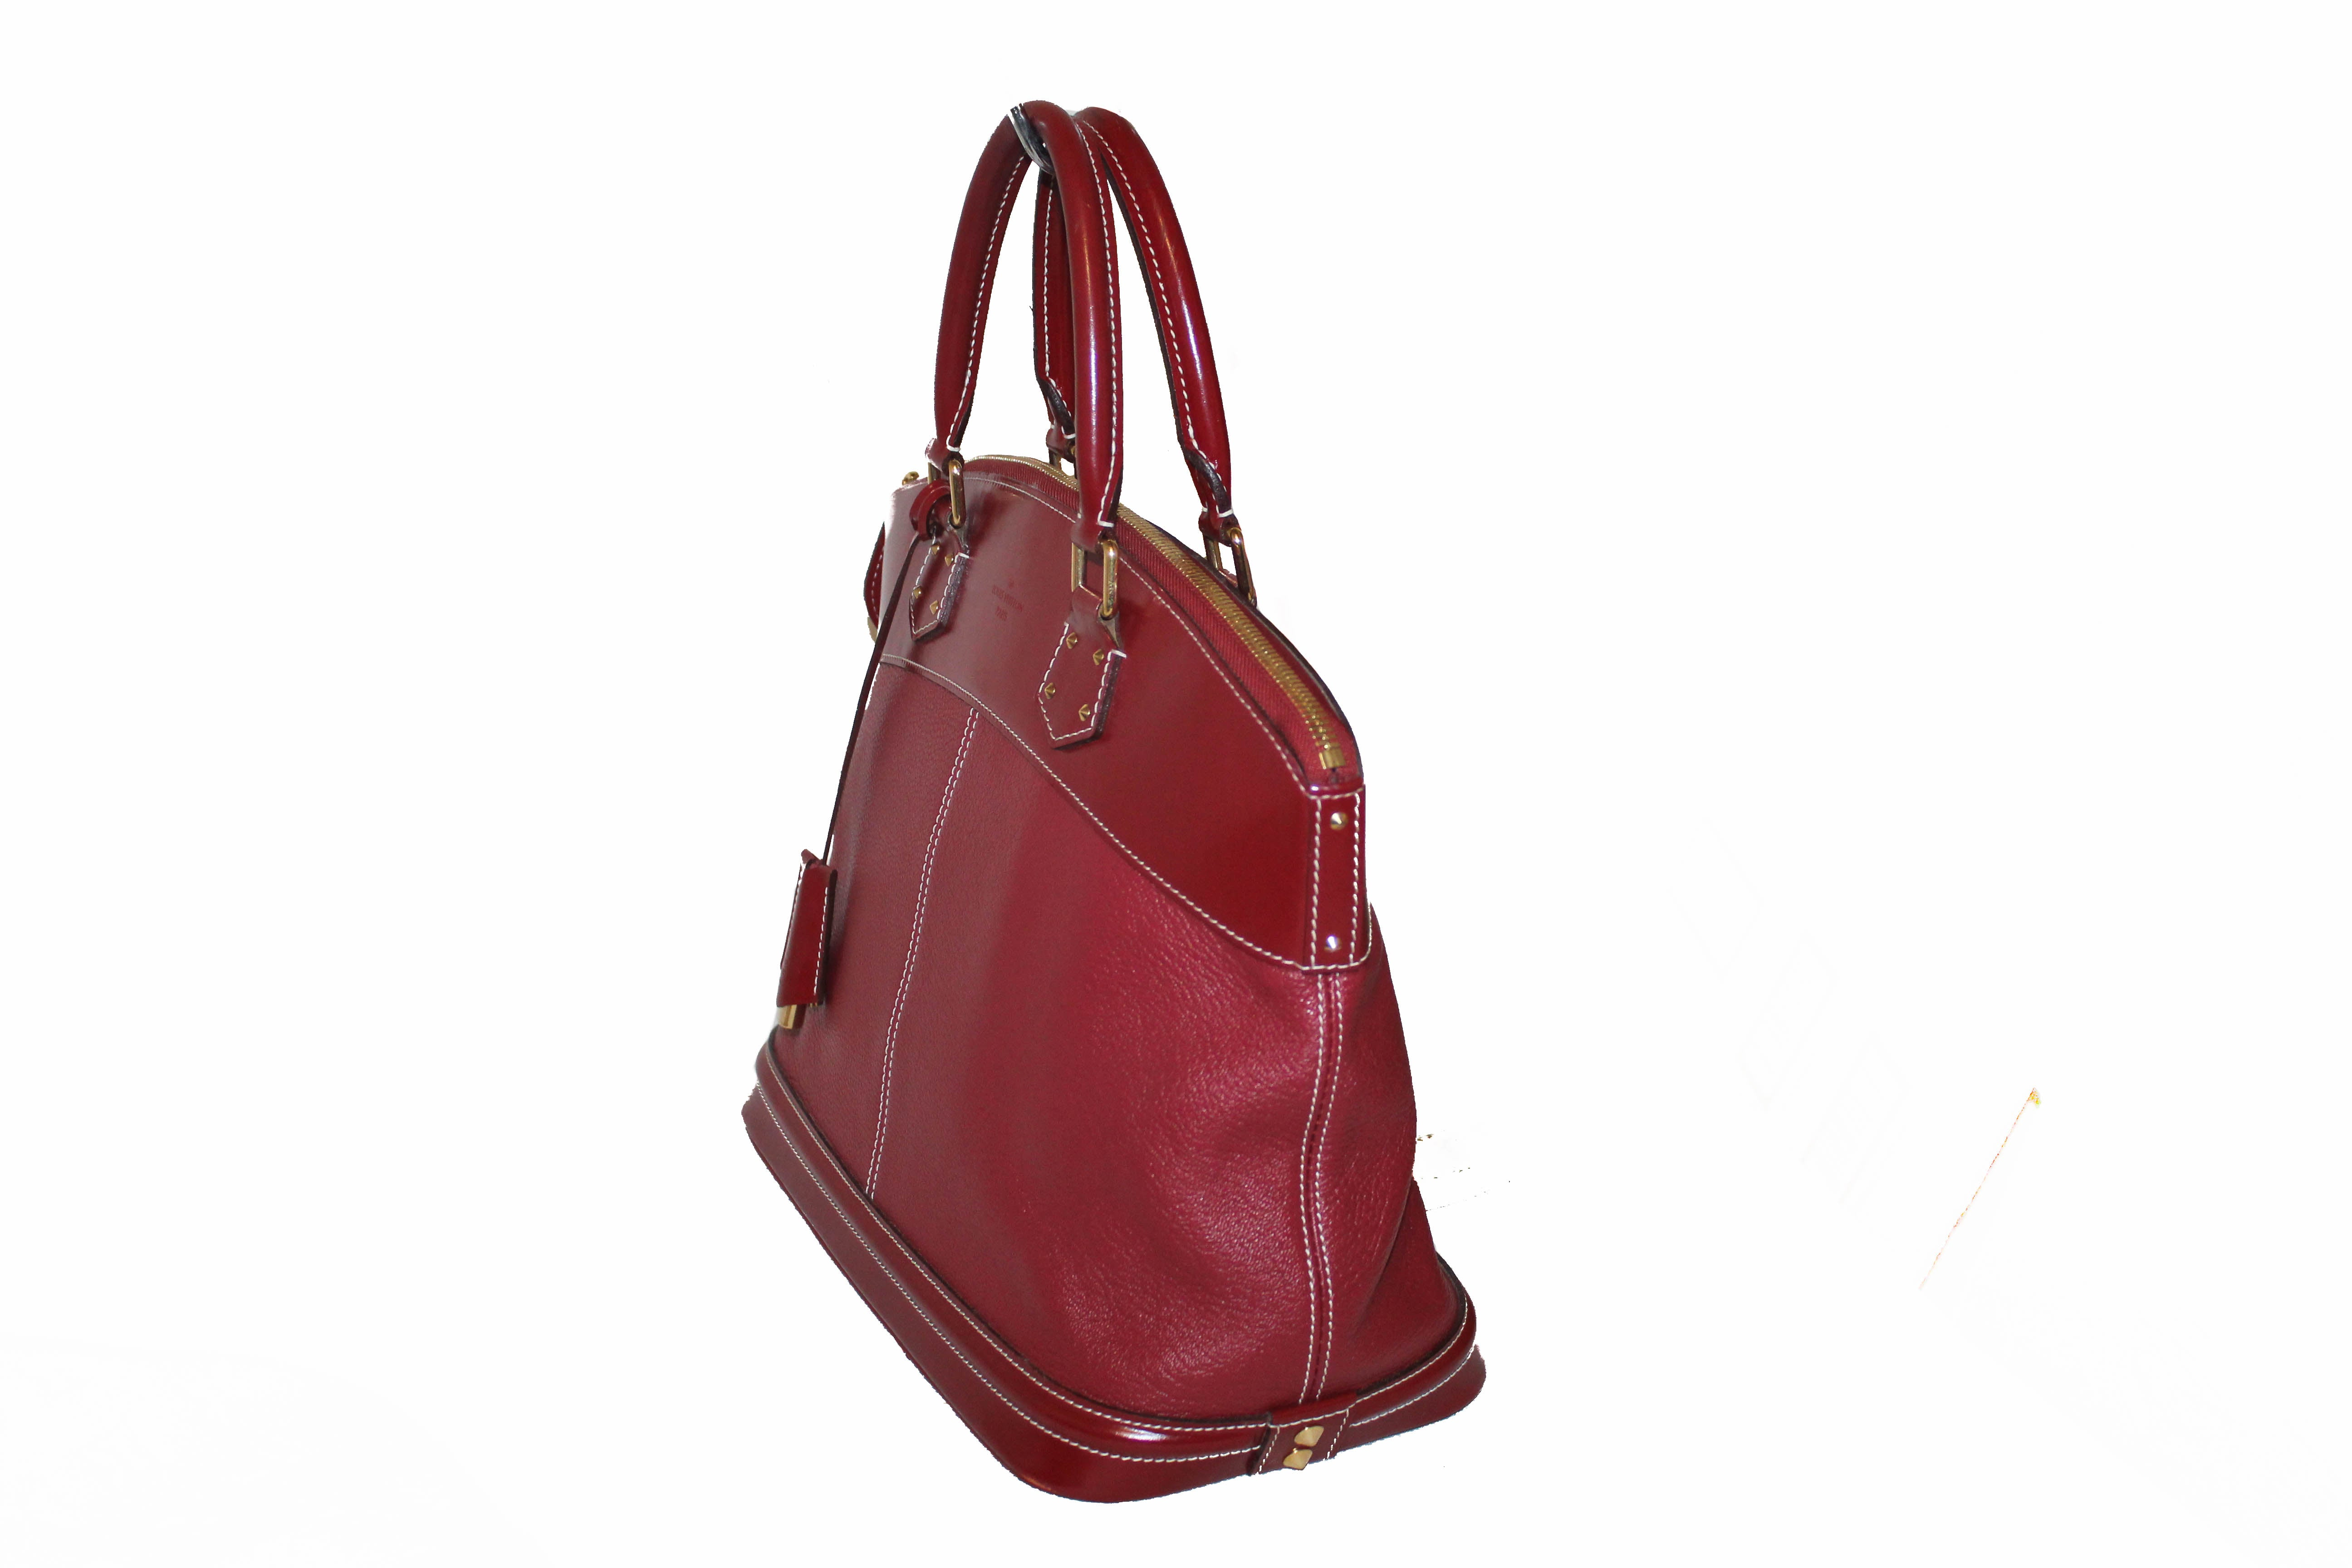 Authentic Louis Vuitton Suhali Red Lockit MM Handbag